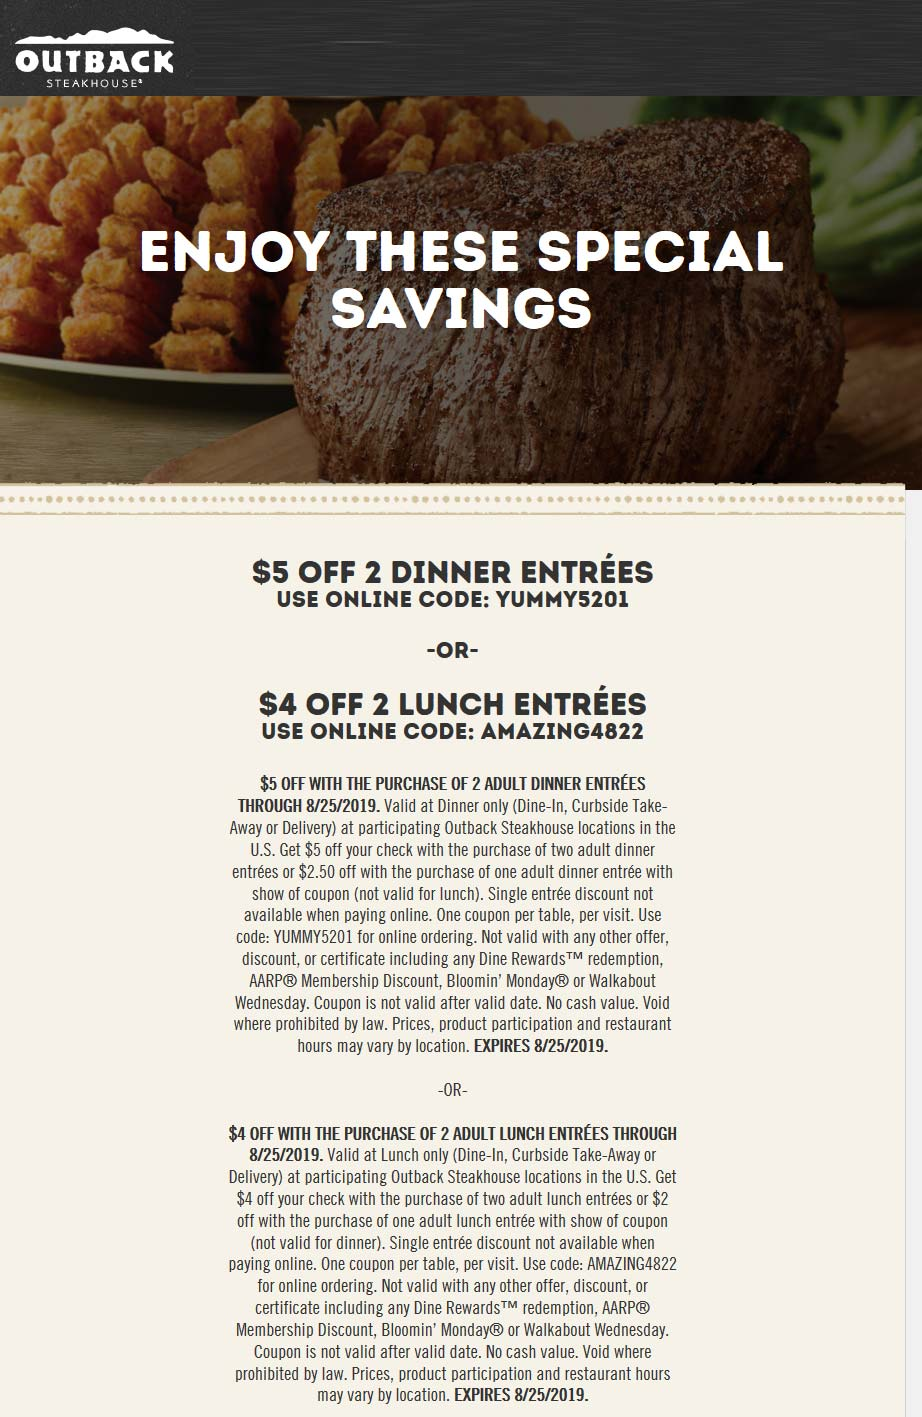 Outback Steakhouse Coupon February 2020 $4-$5 off entrees at Outback Steakhouse